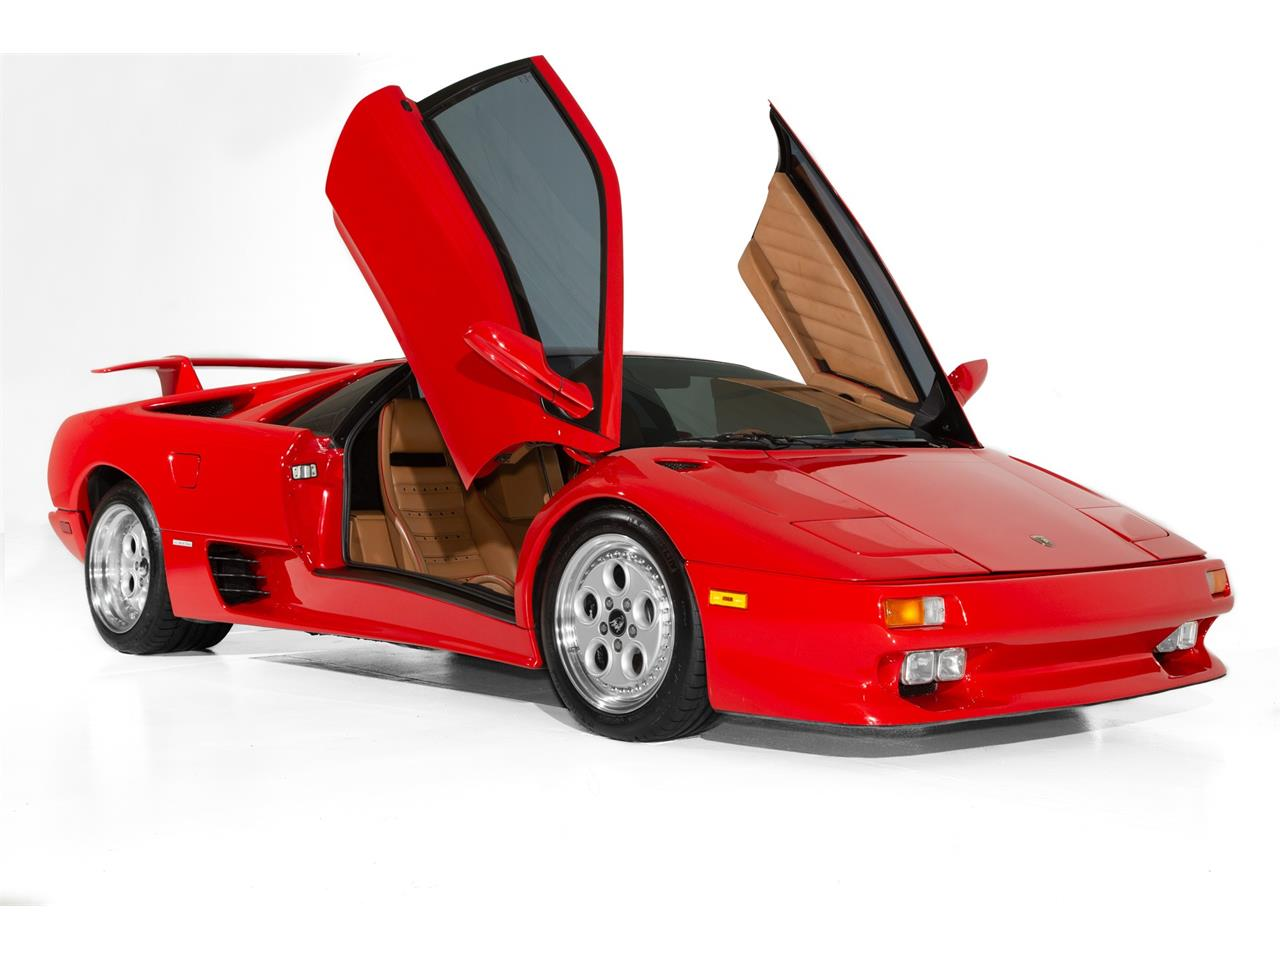 1995 Lamborghini Diablo for sale in Des Moines, IA – photo 6